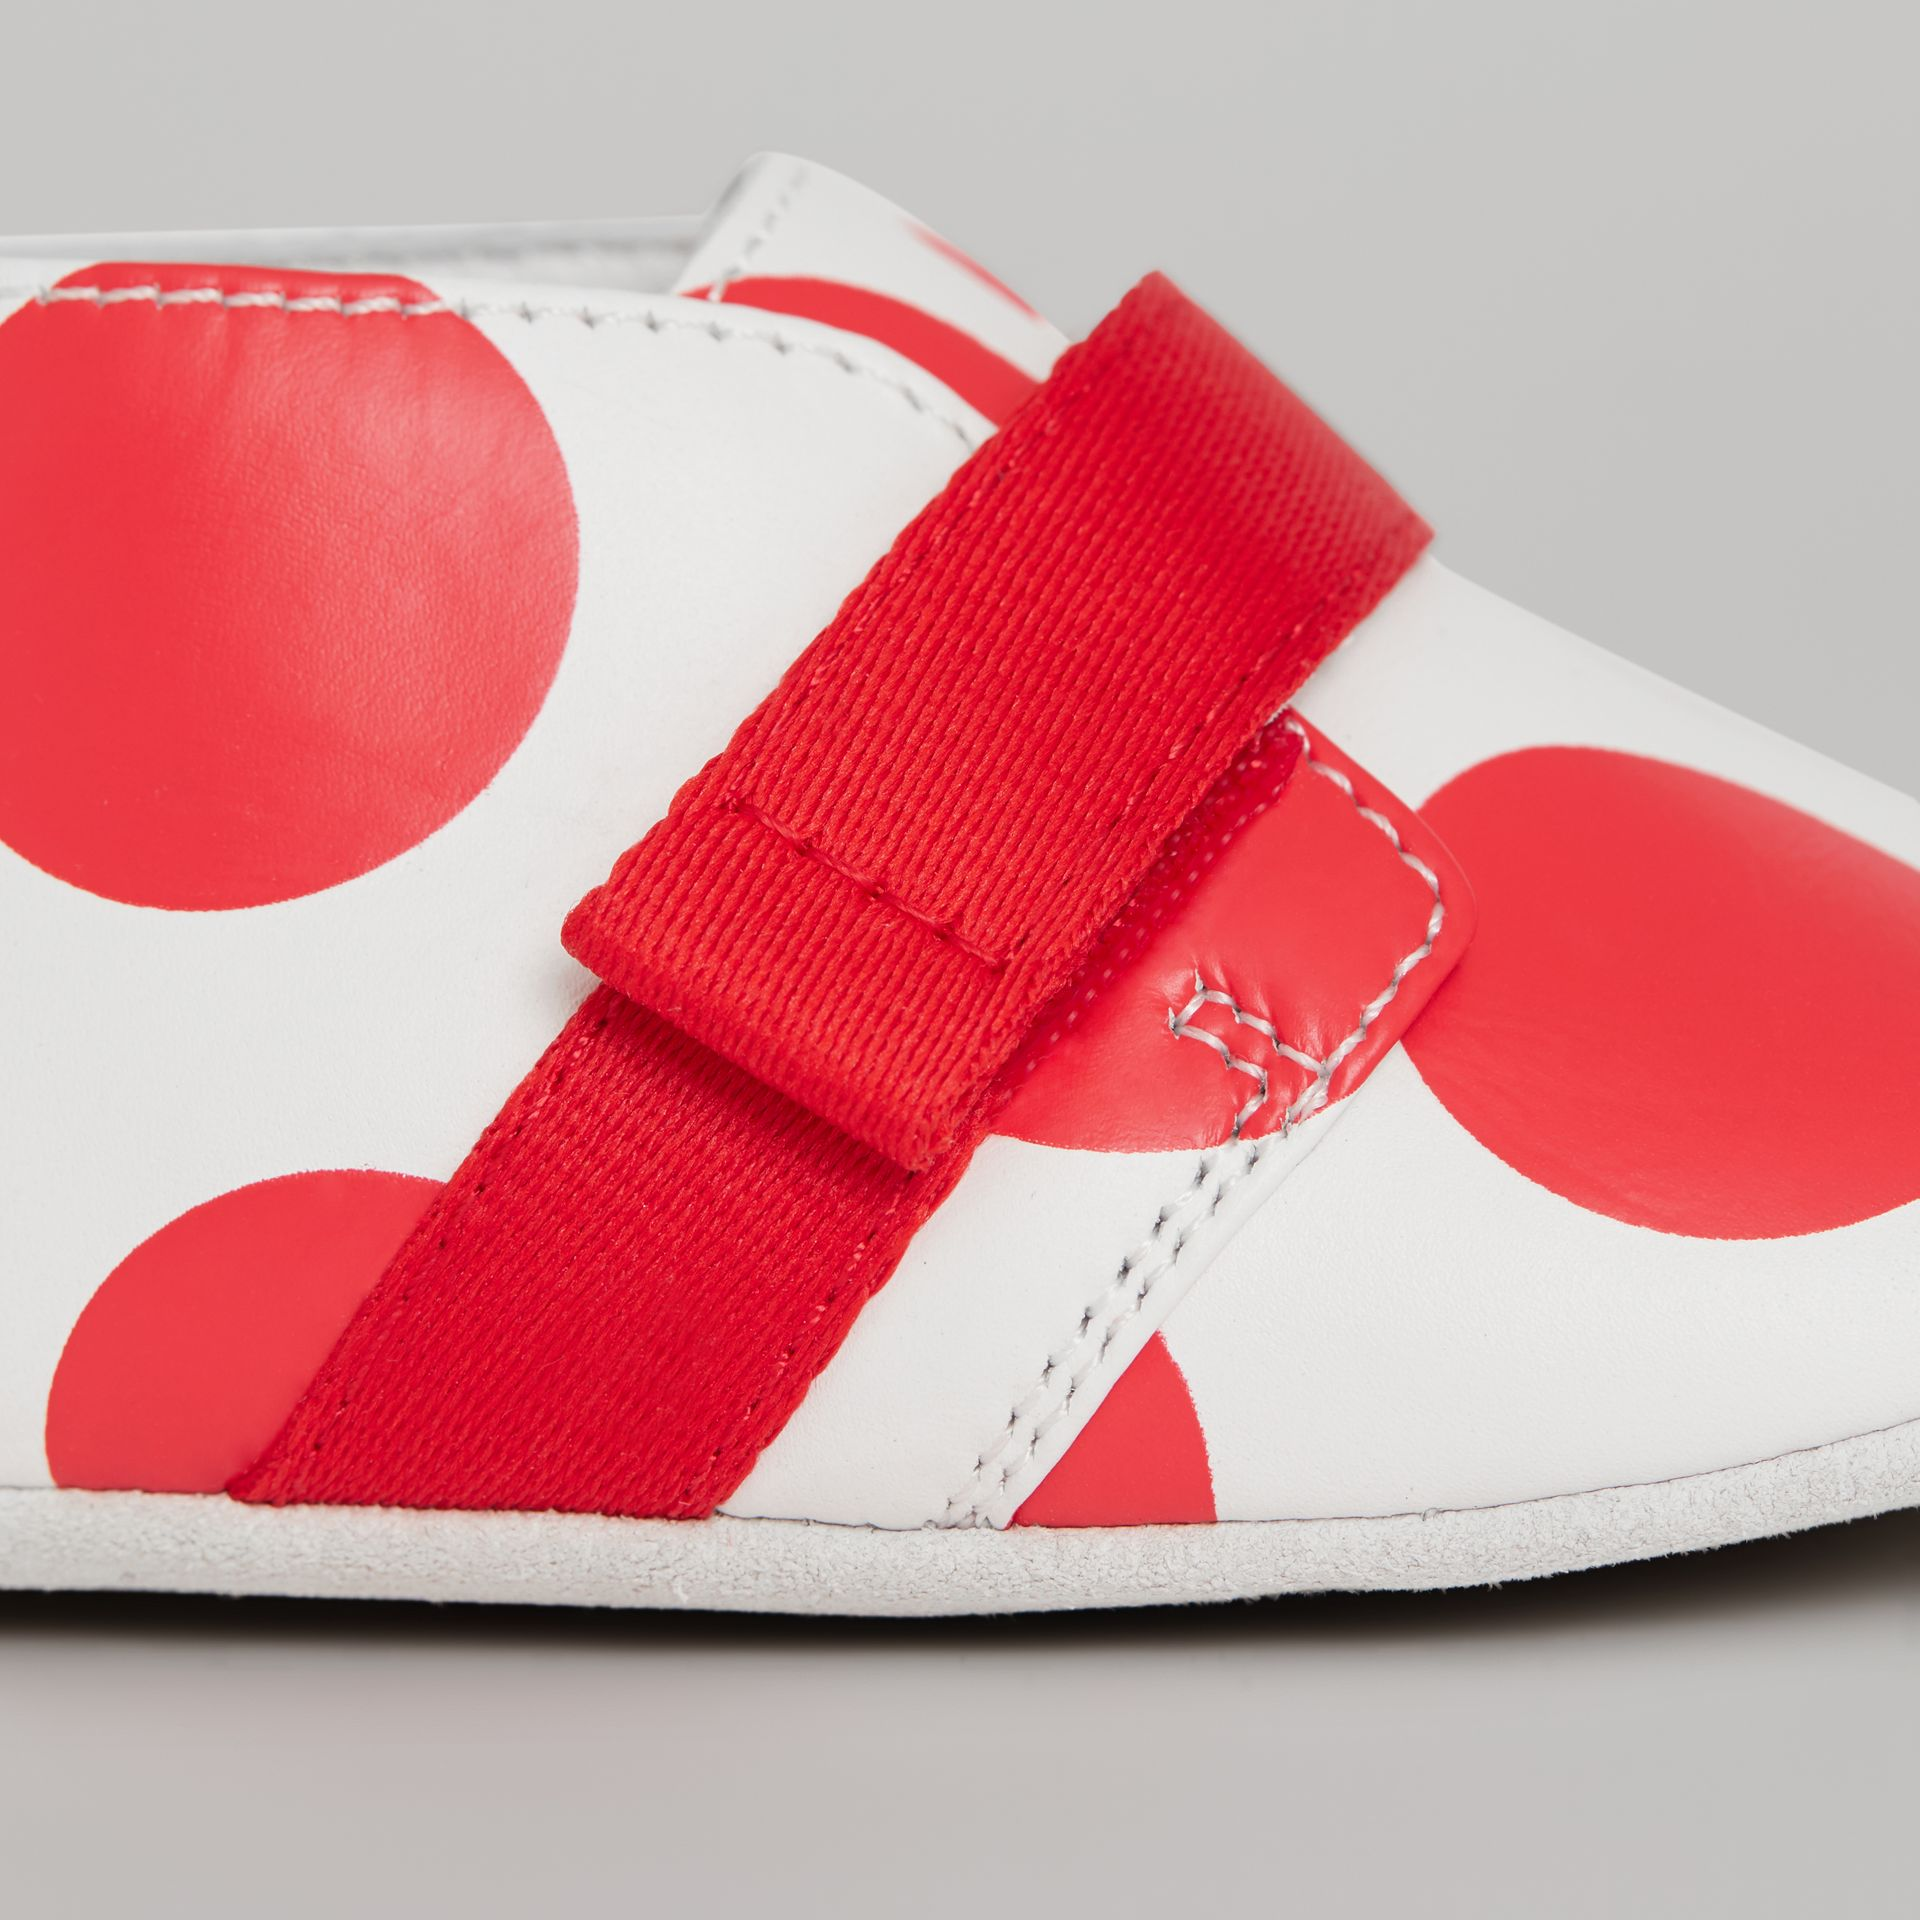 Spot Print Leather Shoes in Bright Red - Children | Burberry United Kingdom - gallery image 1